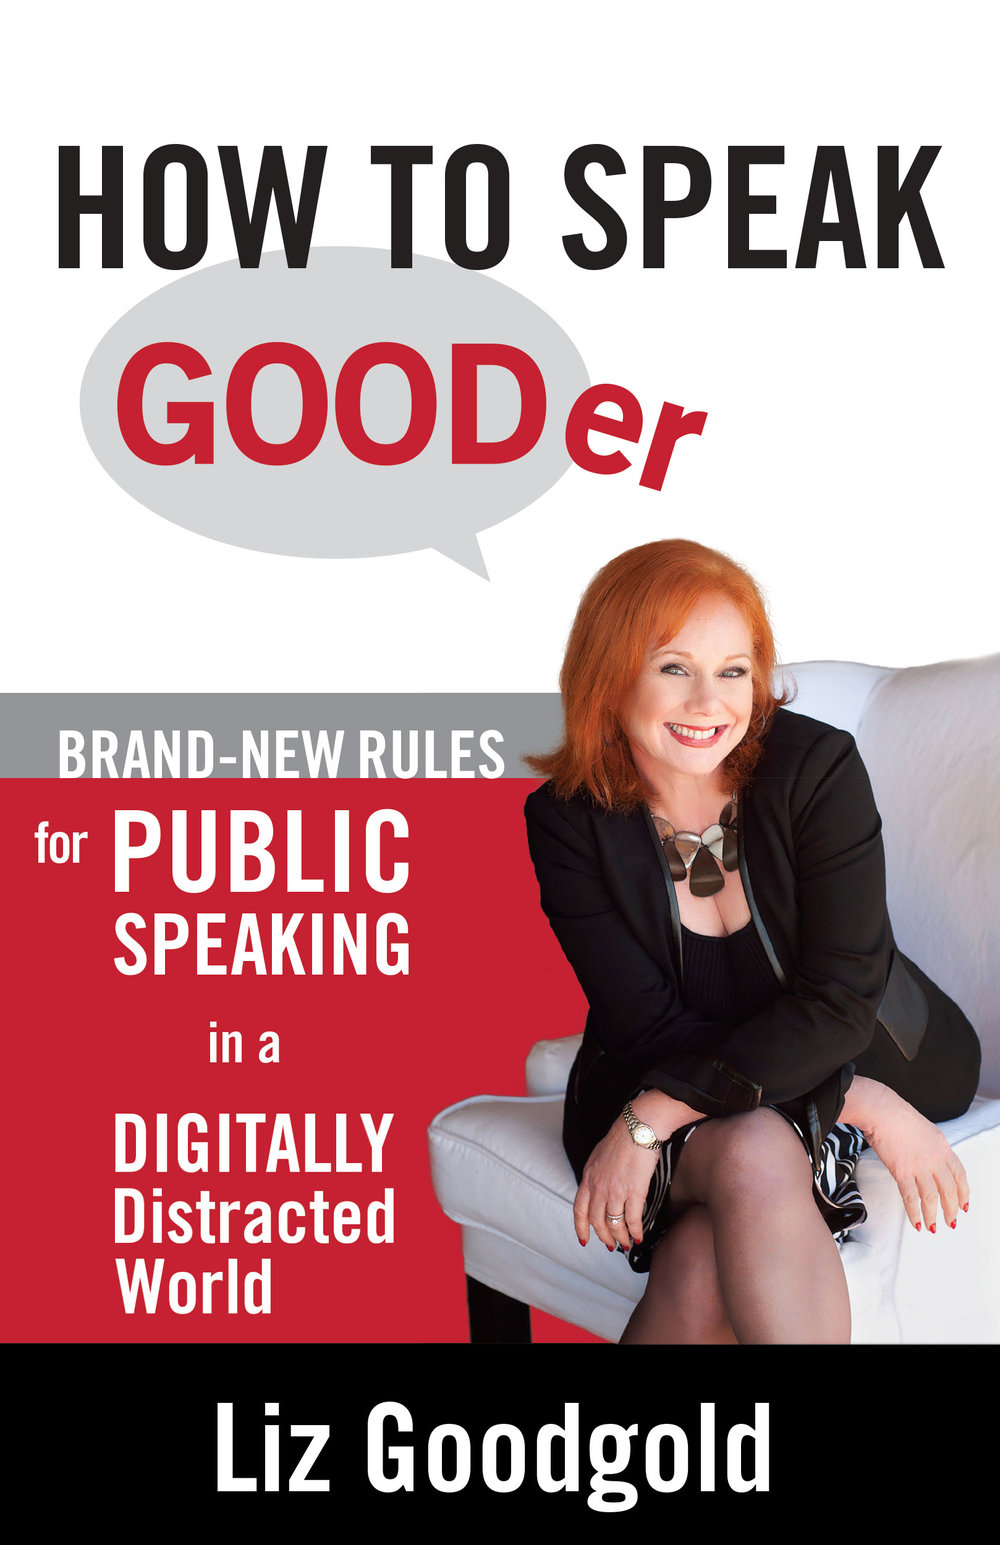 Copy of Liz Goodgold, How to Speak Gooder